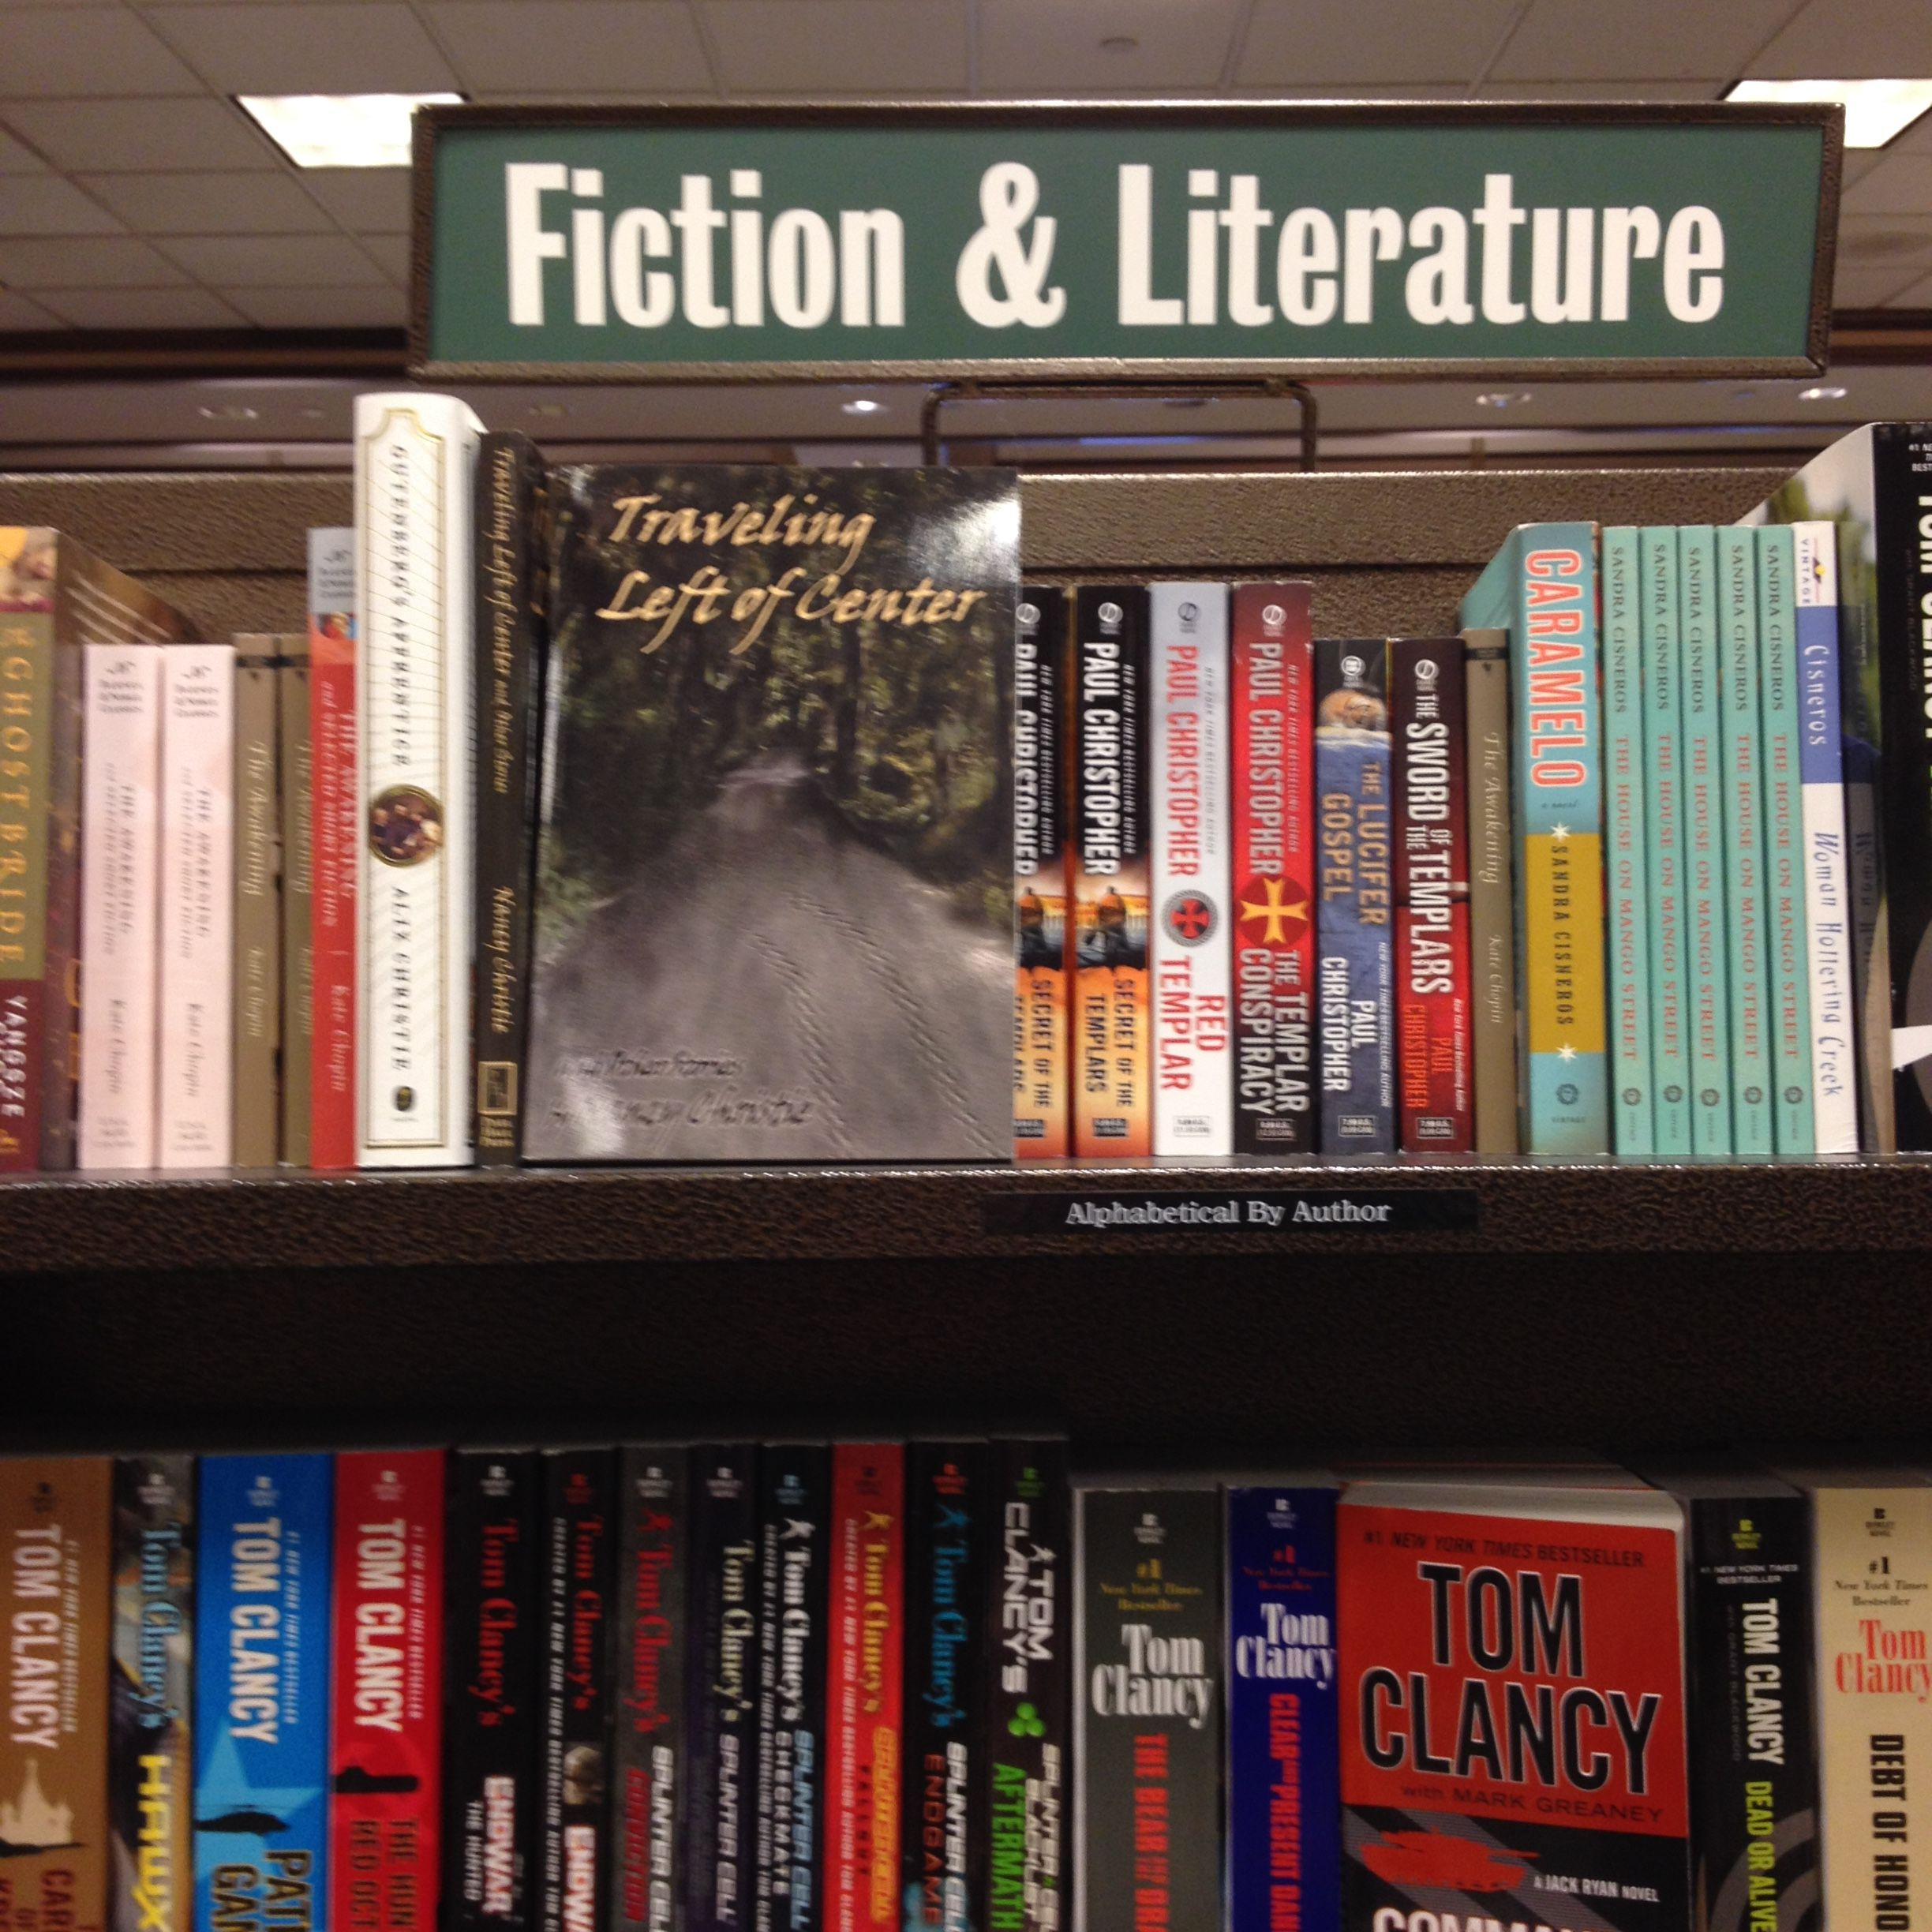 Traveling Left of Center and Other Stories on the shelf at Barnes